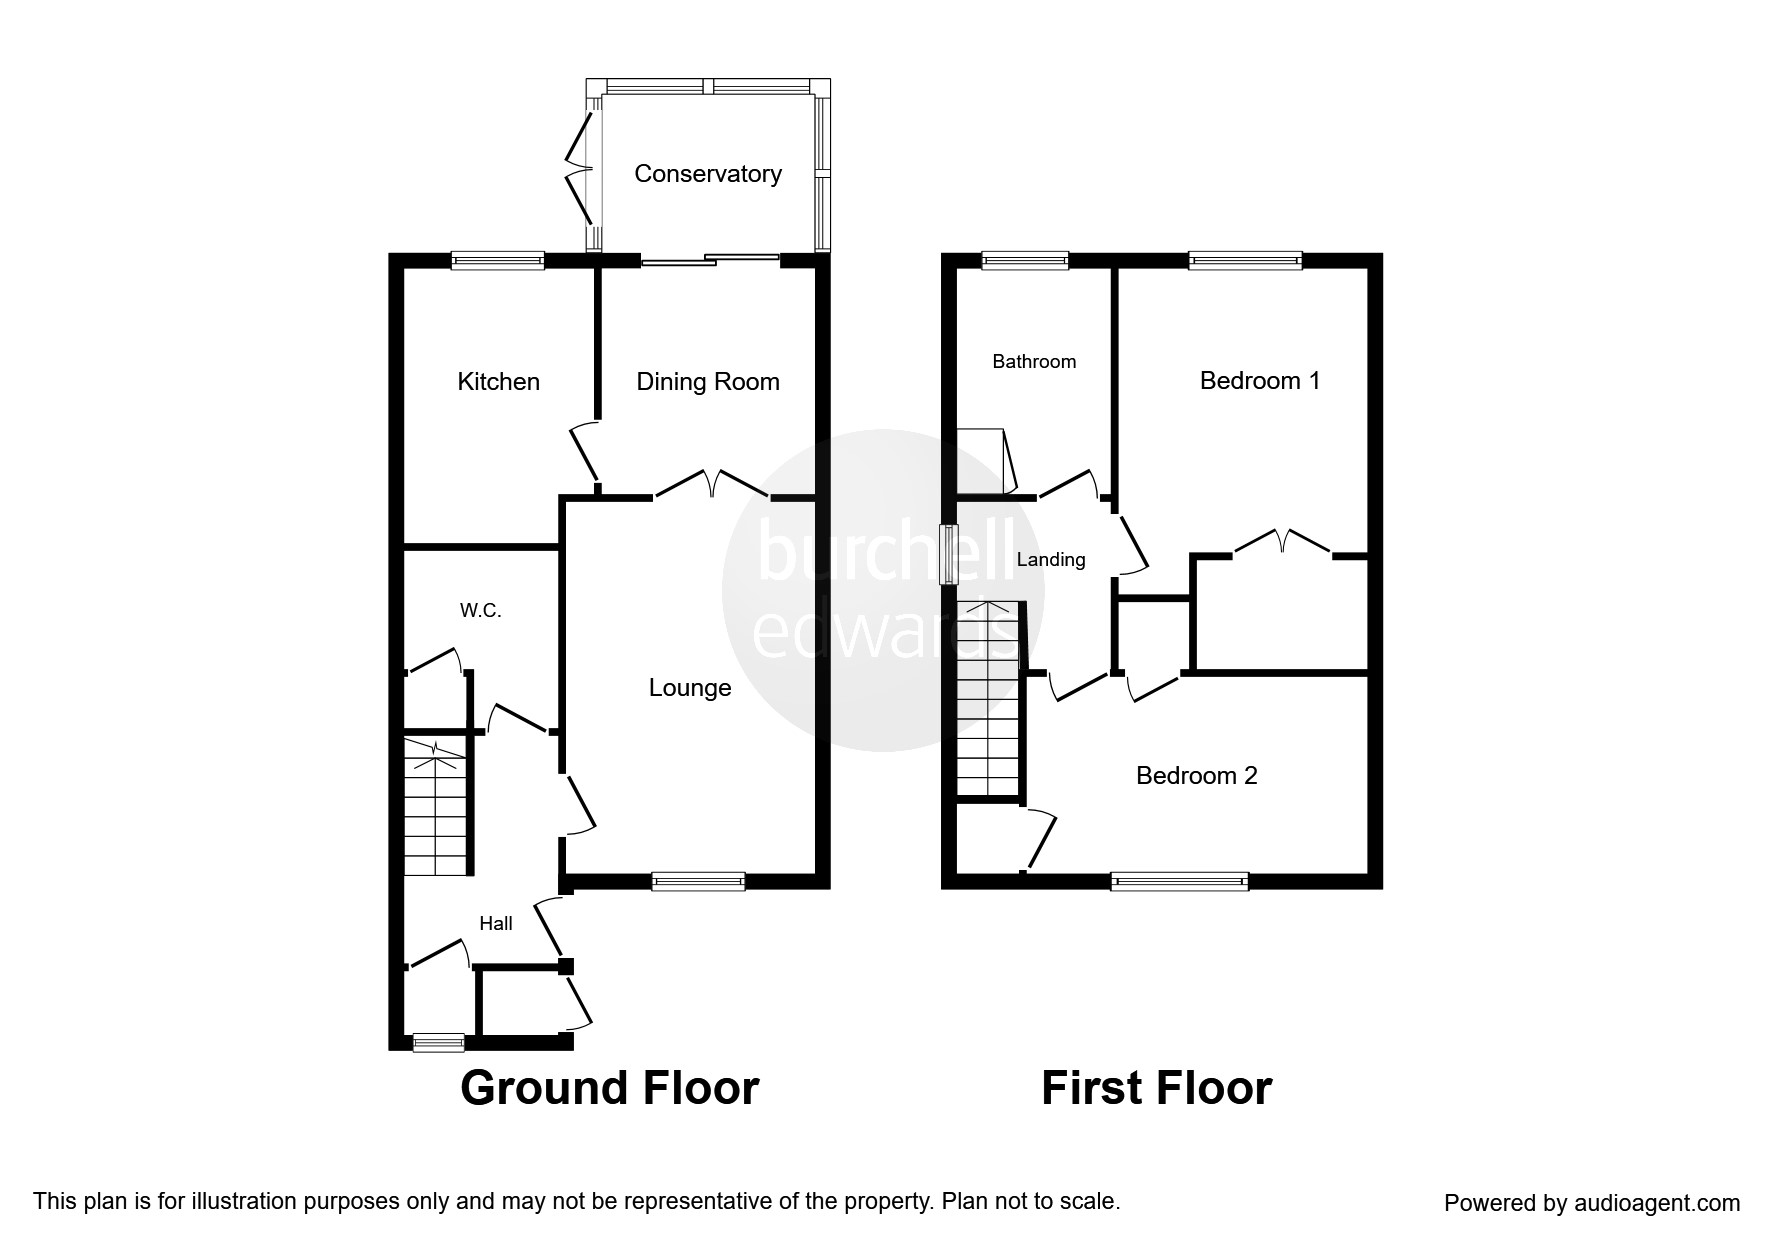 2 Bedrooms Detached house for sale in Warwick Grange, Solihull B91